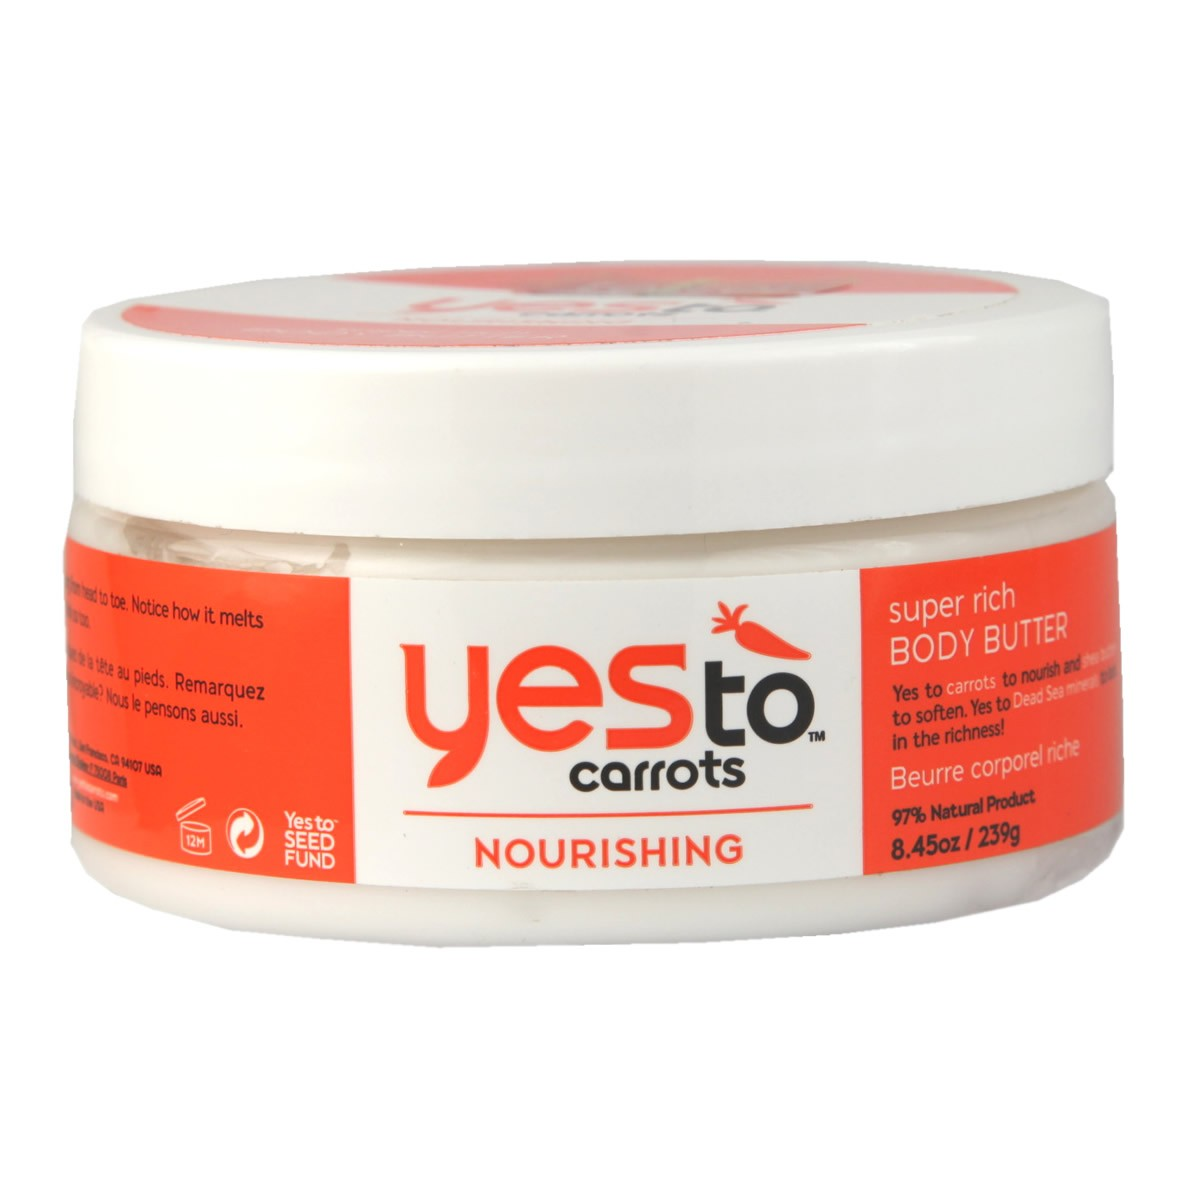 Yes To Carrots Nourishing Super Rich Body Butter